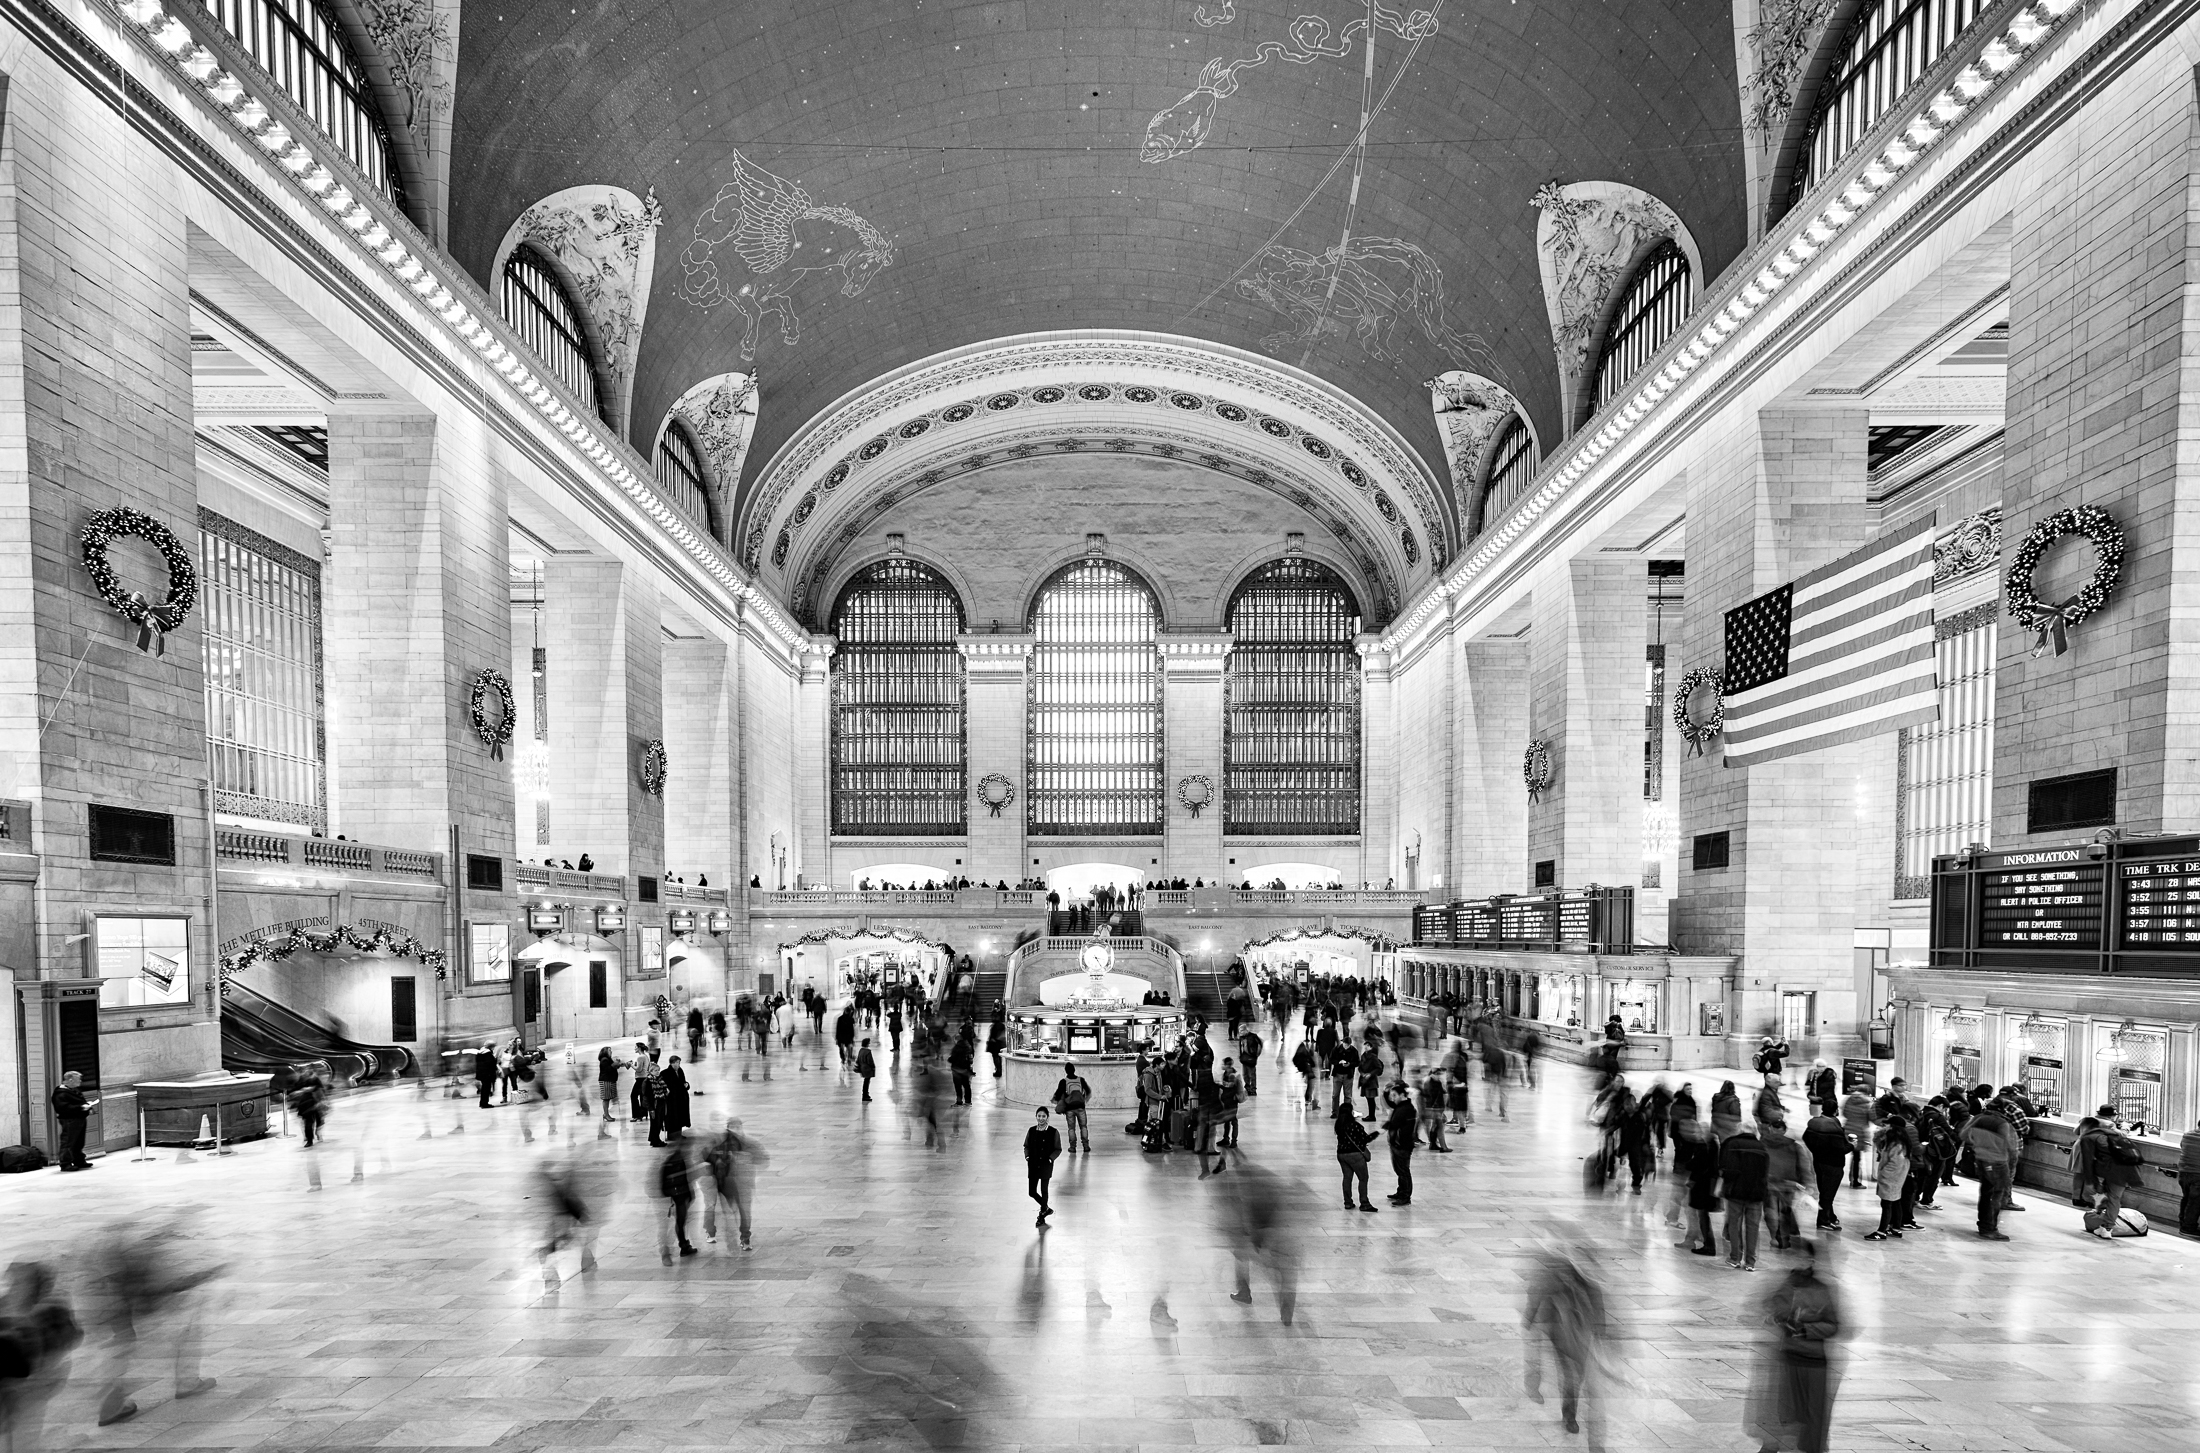 A monochromatic image of the iconic Grand Central Station in New York - Photo by Paul Tadday